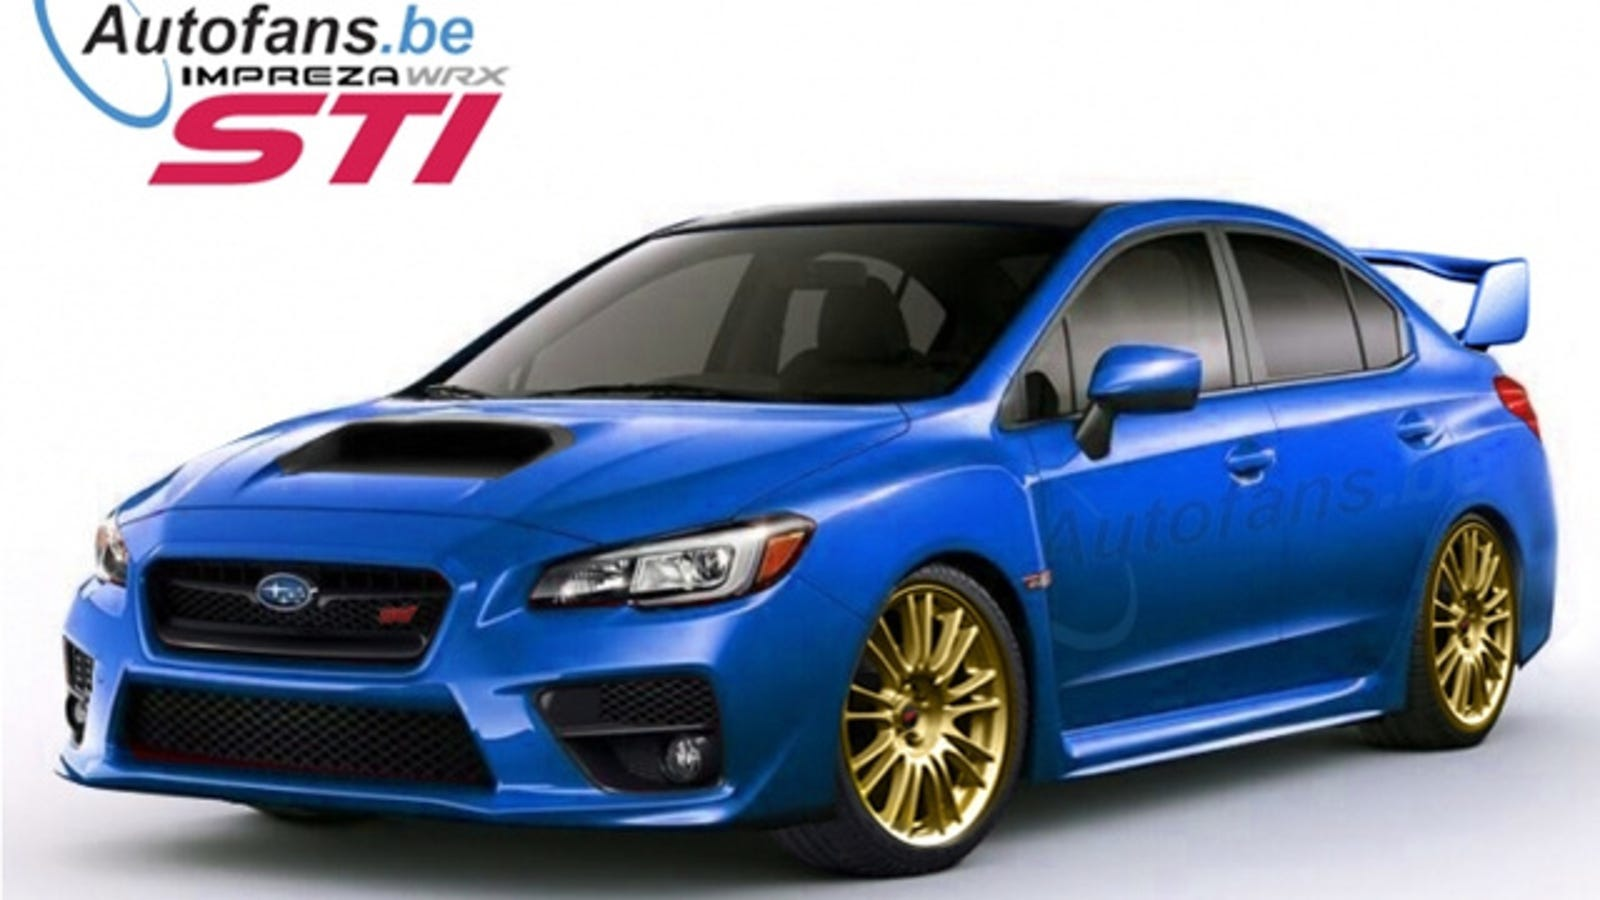 2015 subaru wrx sti its giant wing to debut in detroit. Black Bedroom Furniture Sets. Home Design Ideas